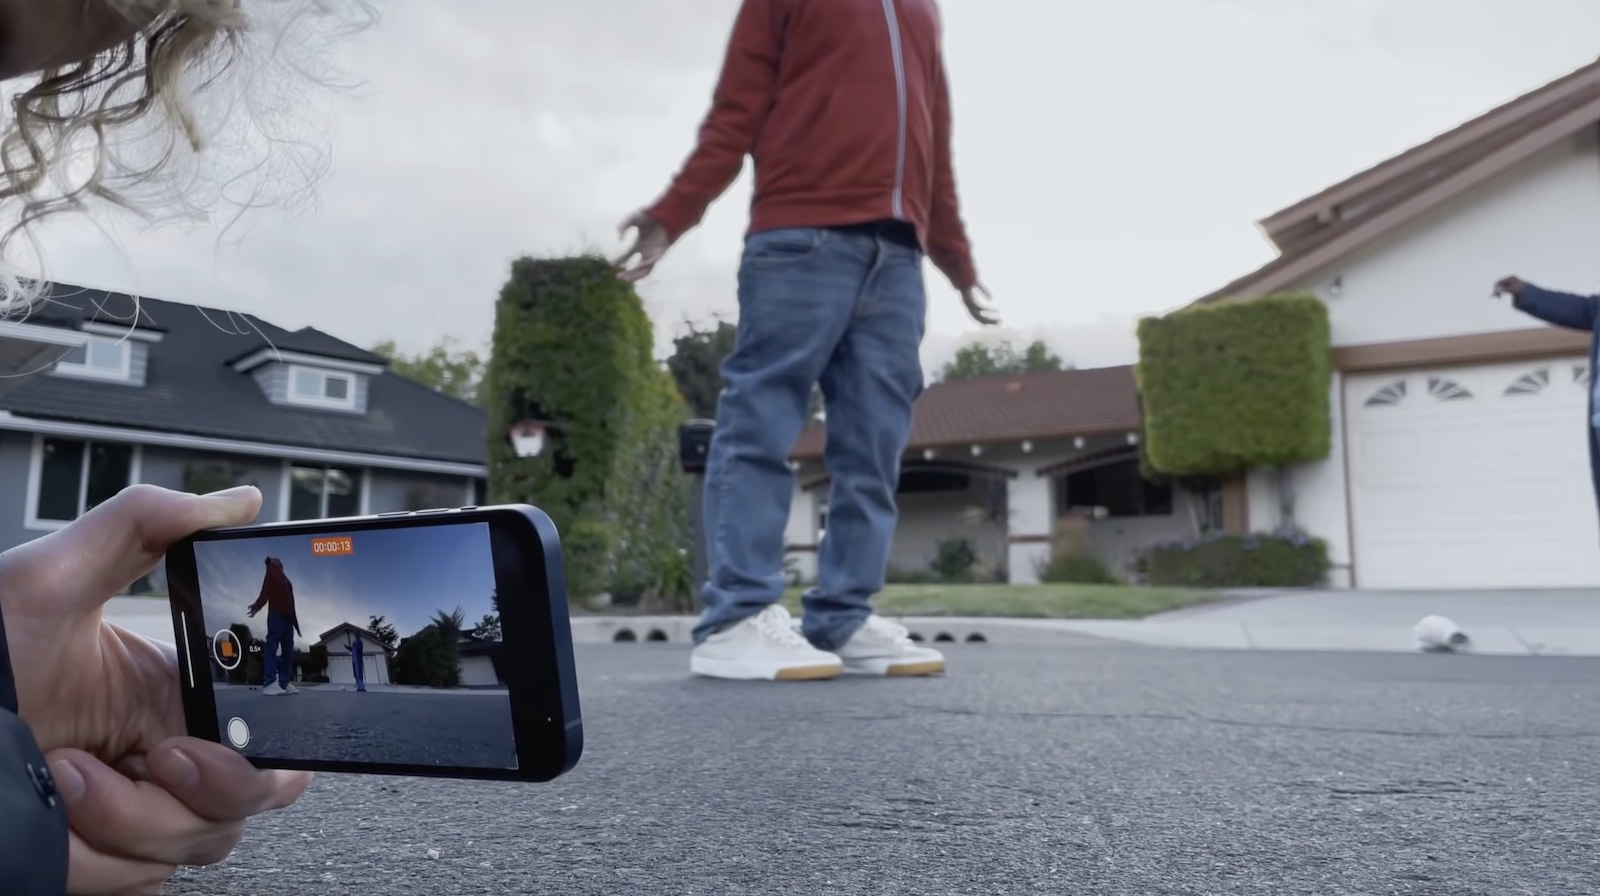 filming-techniques-using-iphone.jpg